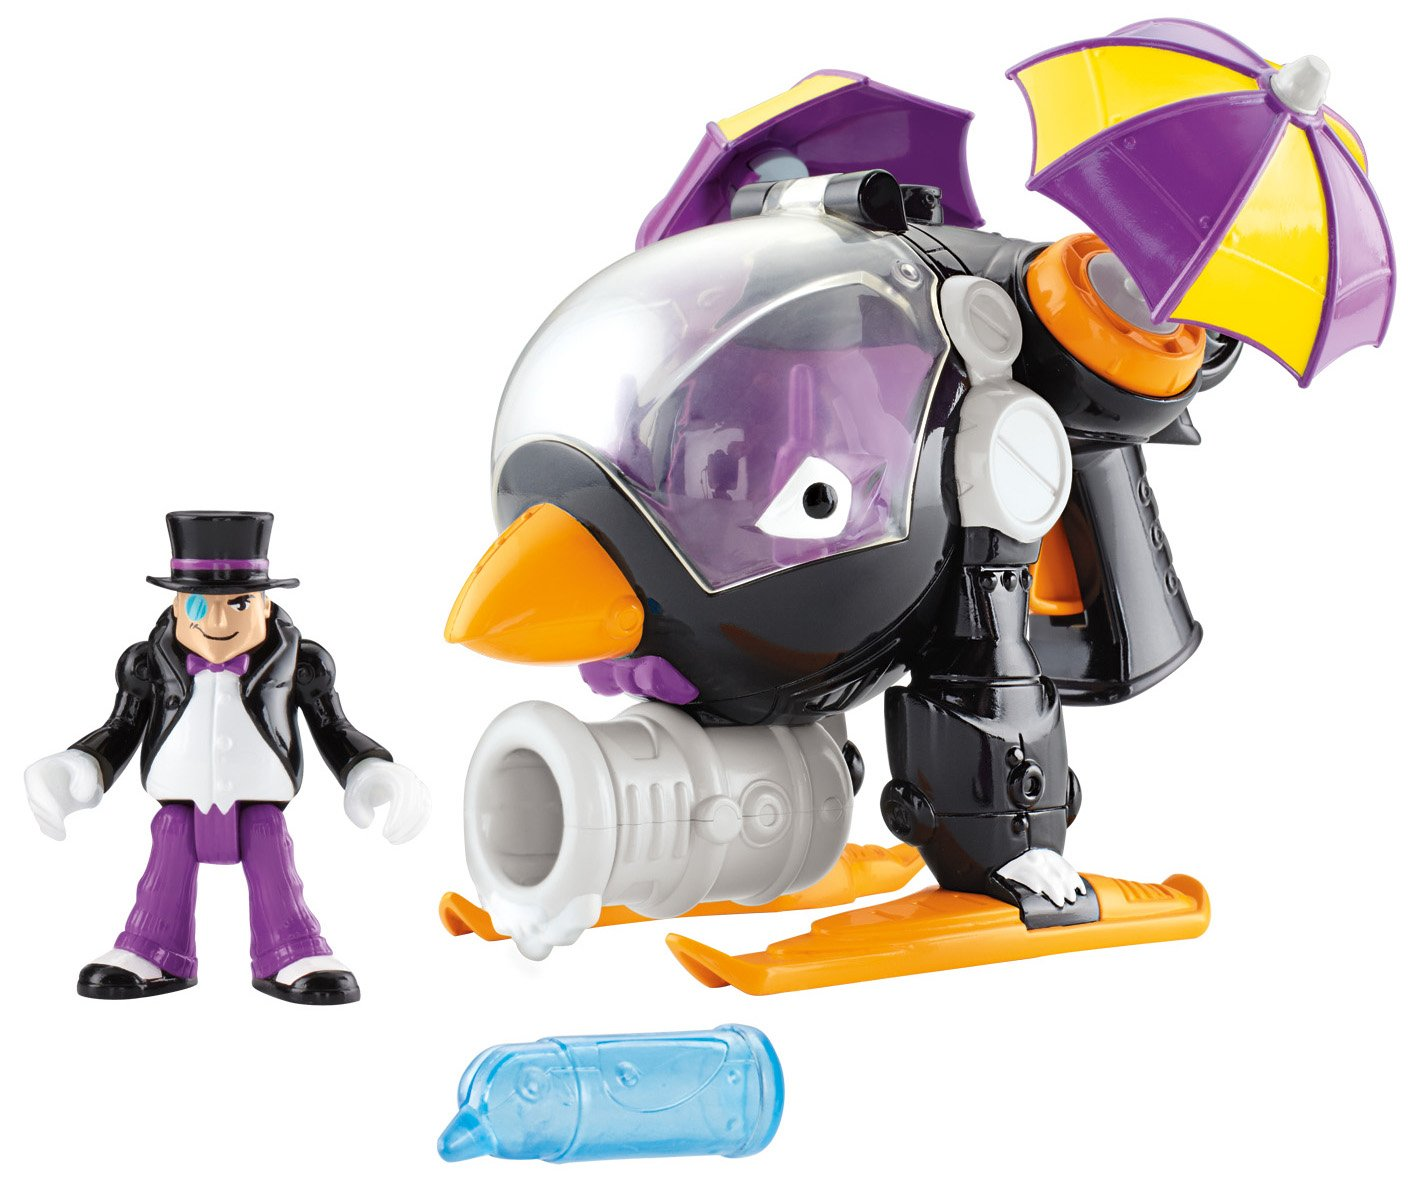 Fisher-Price Imaginext DC Super Friends, the Penguin Copter